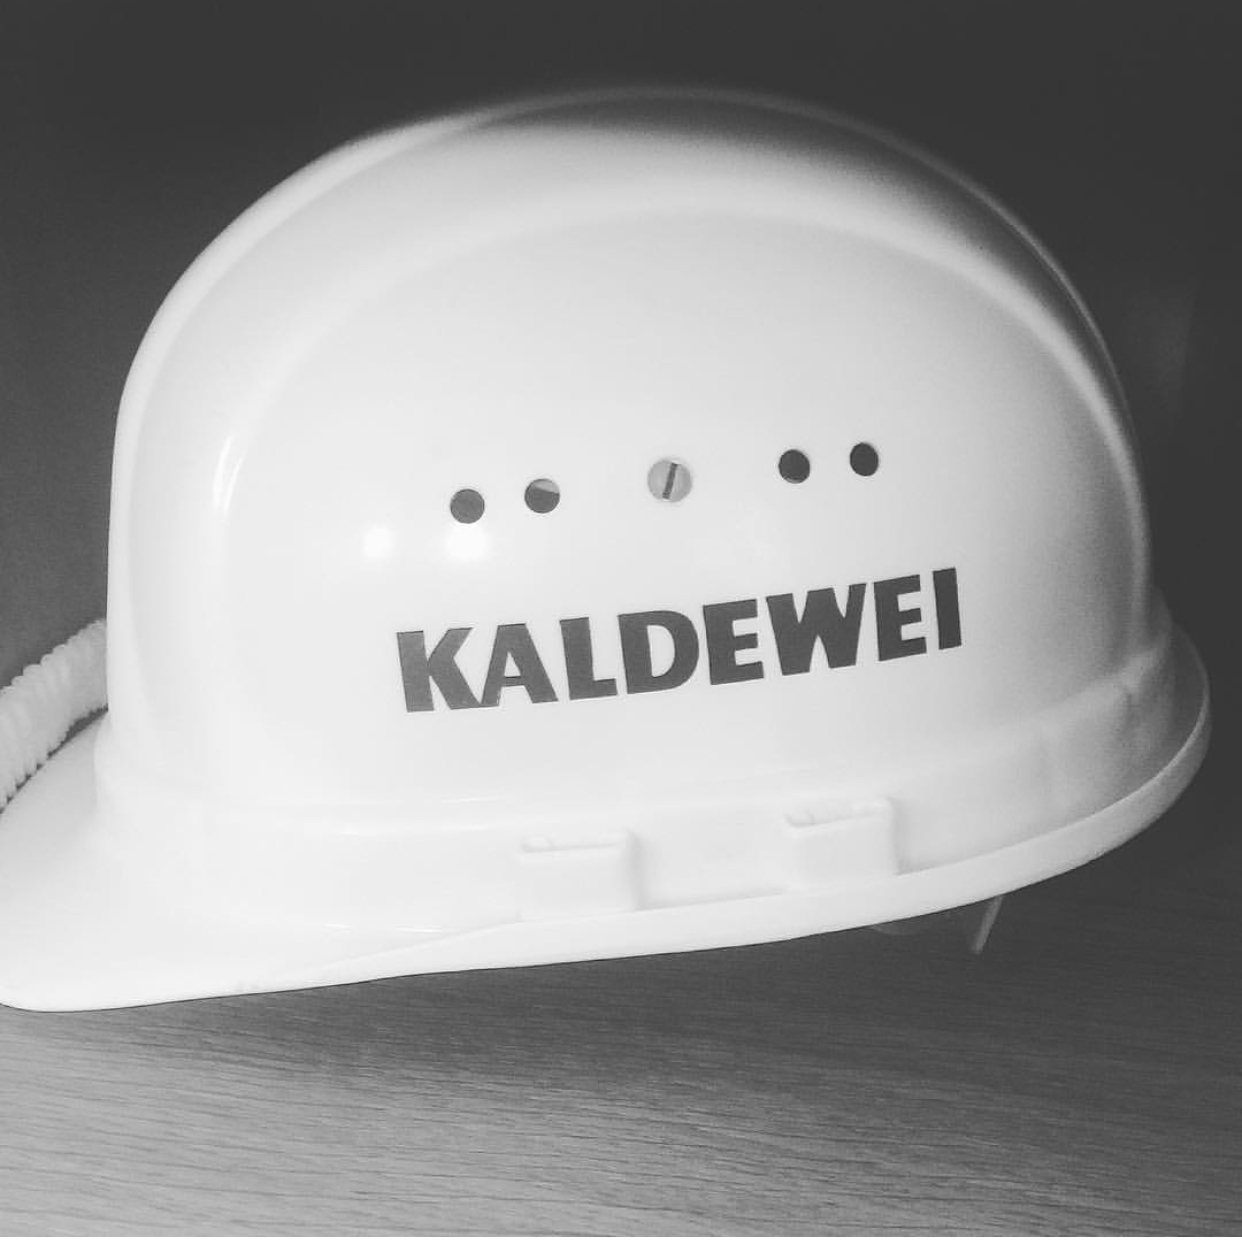 Safety first @ the Kaldewei factory tour in Ahlen.